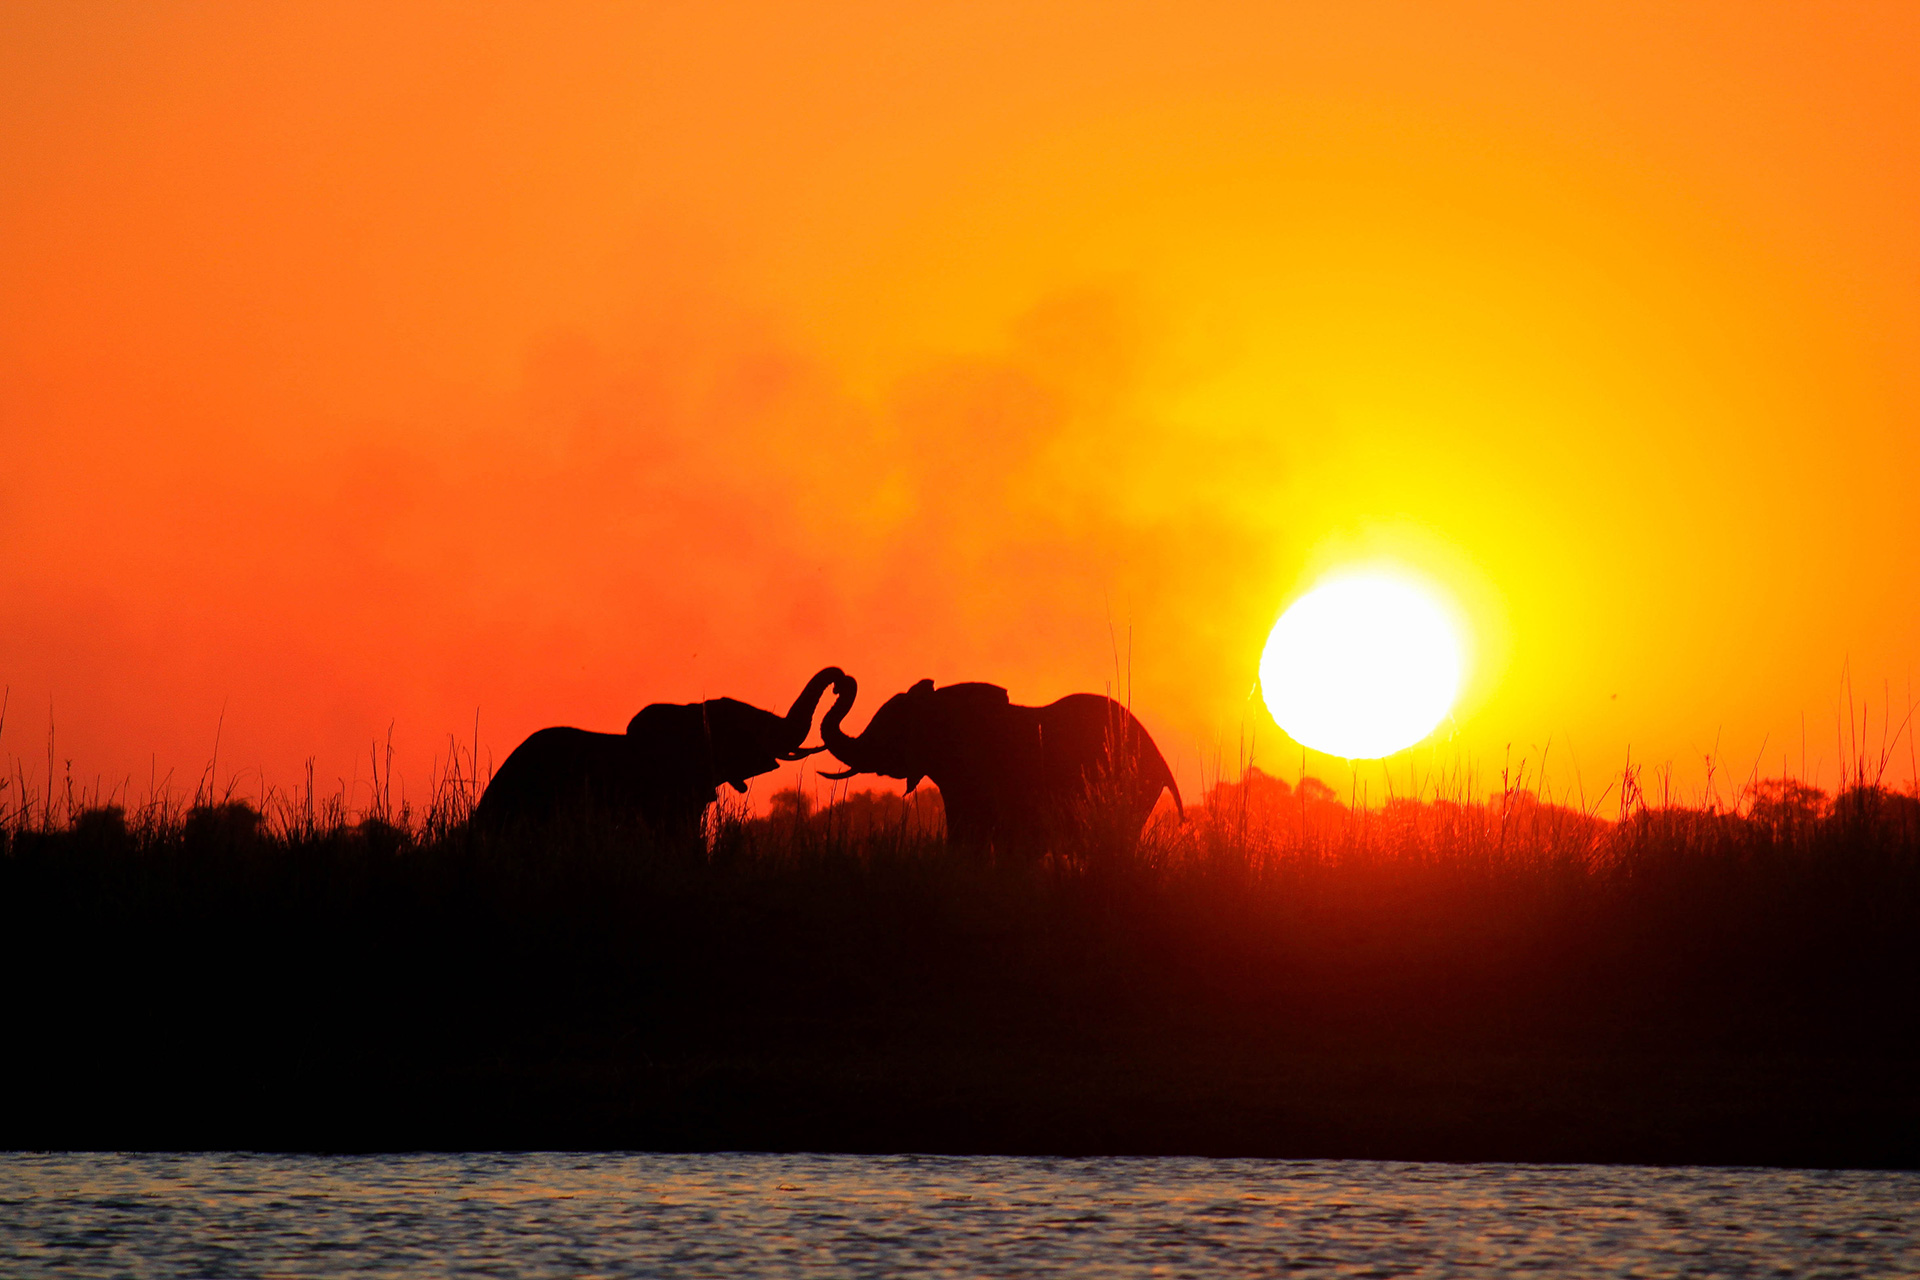 Elephants sunset